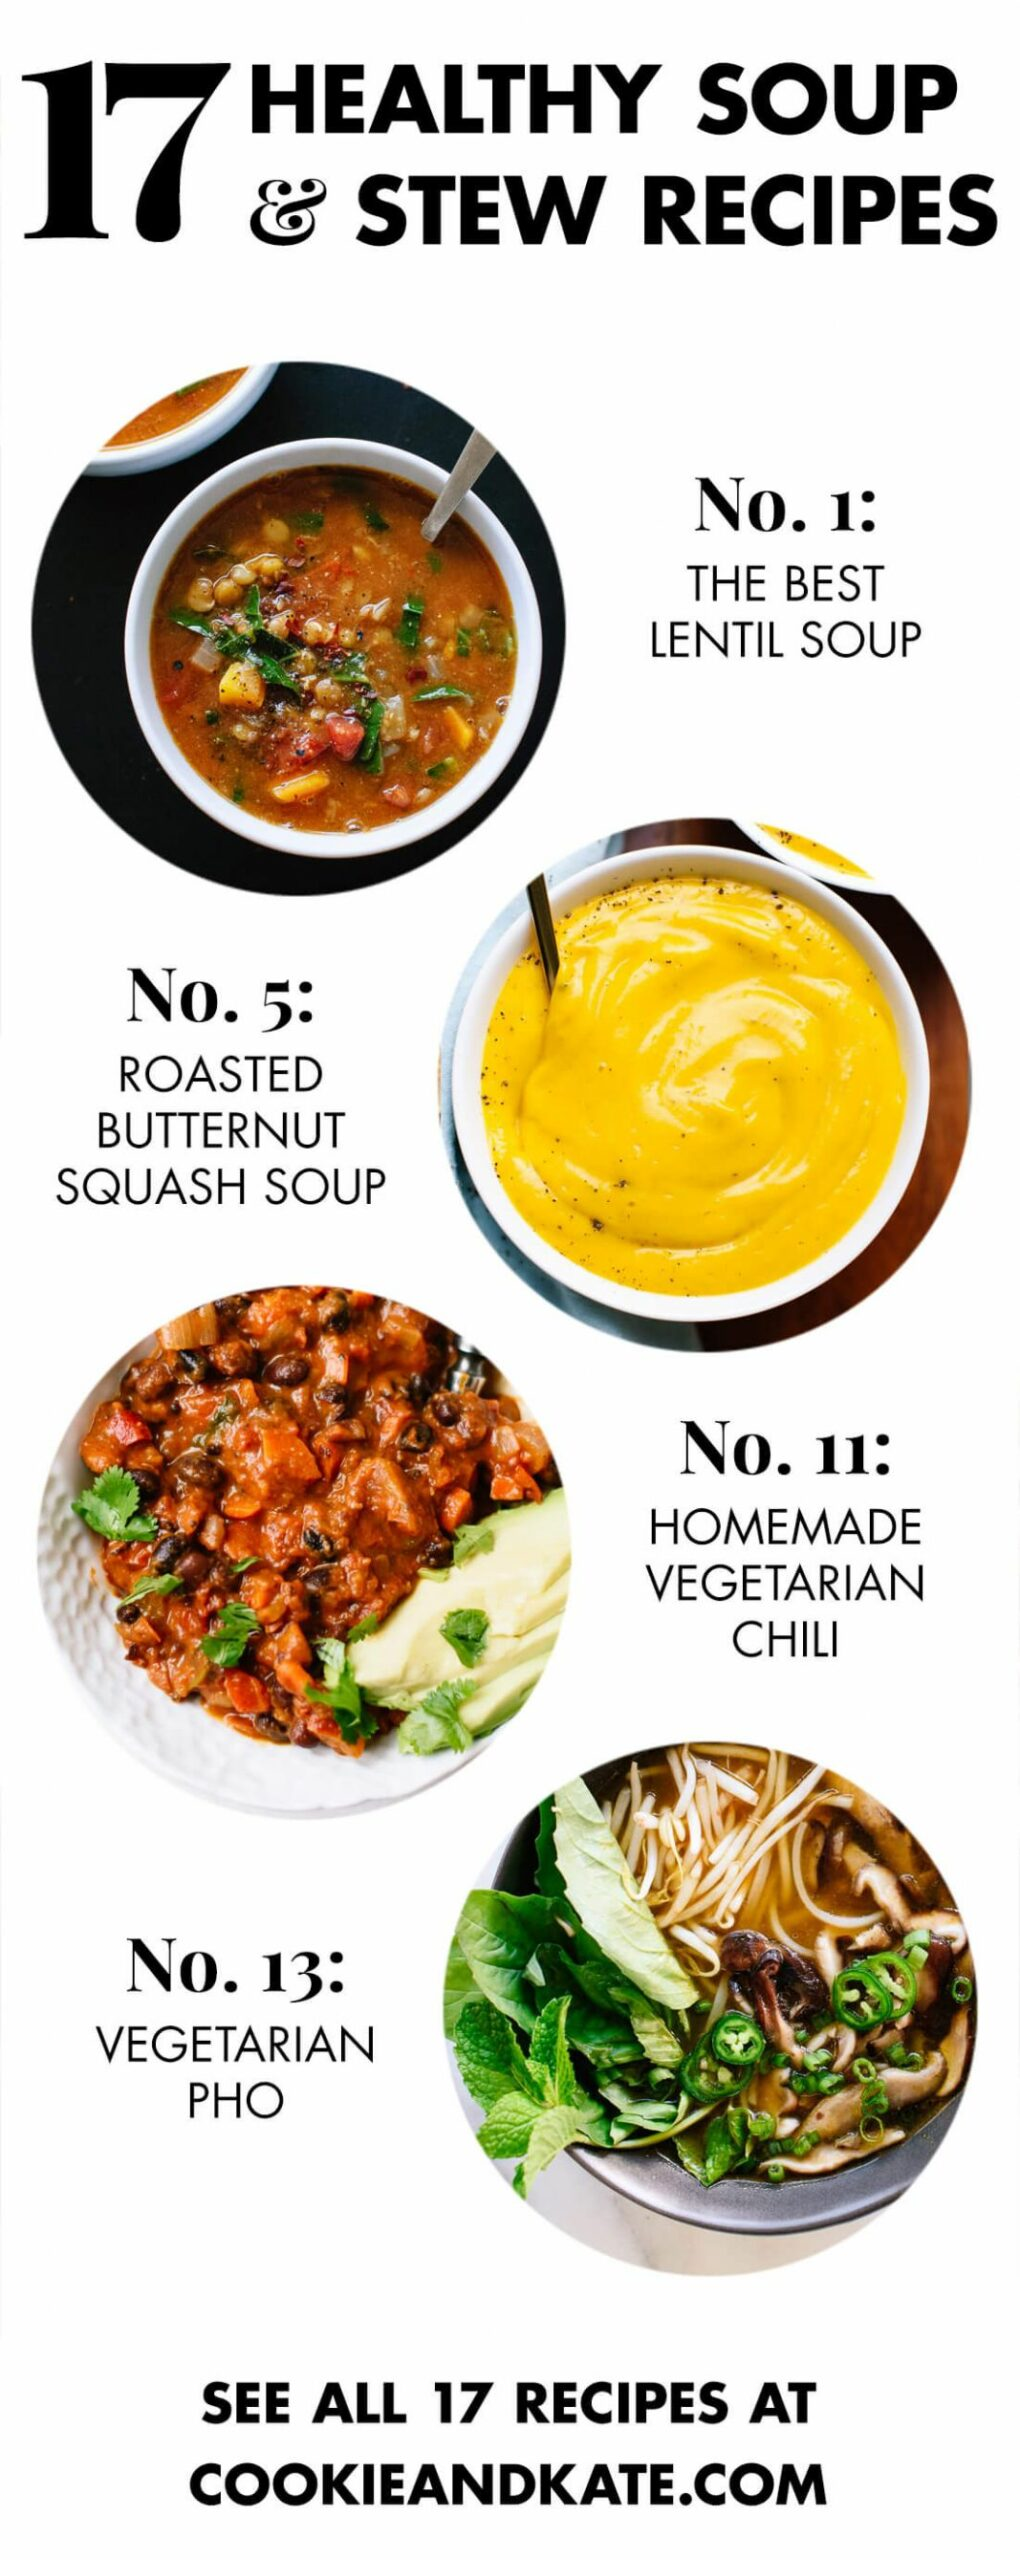 8 Healthy Vegetarian Soup Recipes - Cookie and Kate - Soup Recipes No Meat